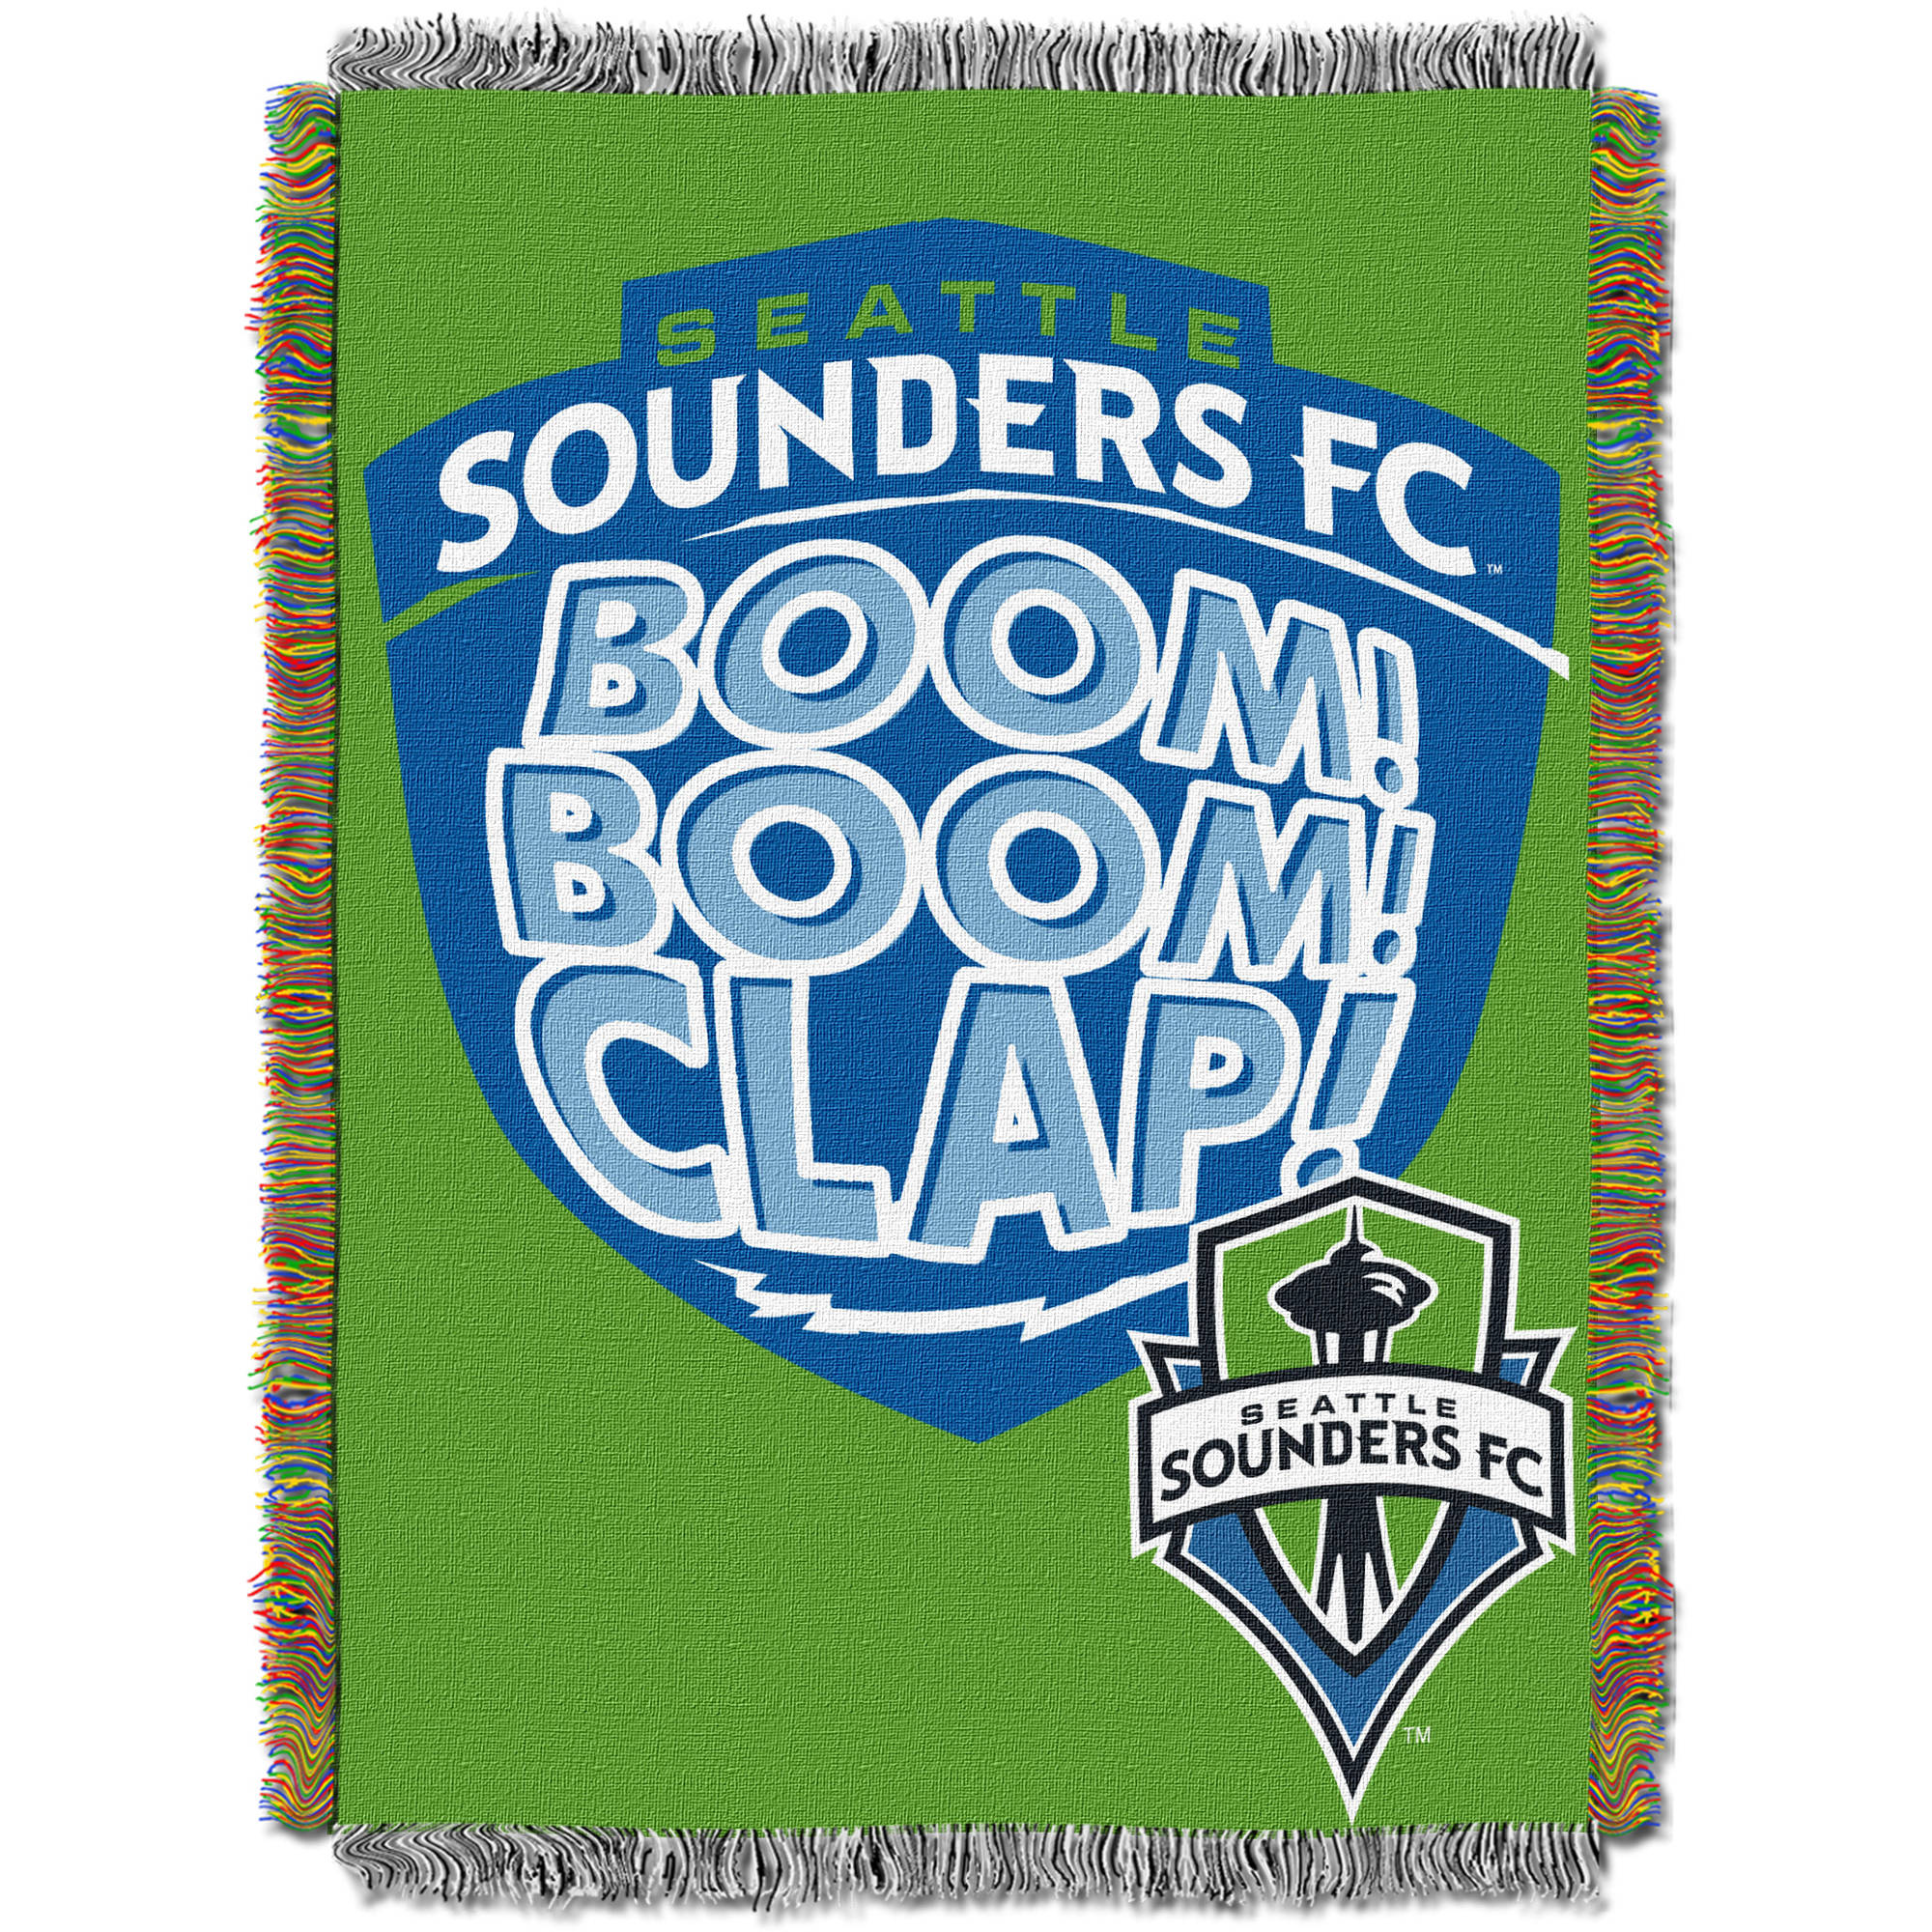 "MLS Seattle Sounders Handmade 48"" x 60"" Woven Tapestry Throw"